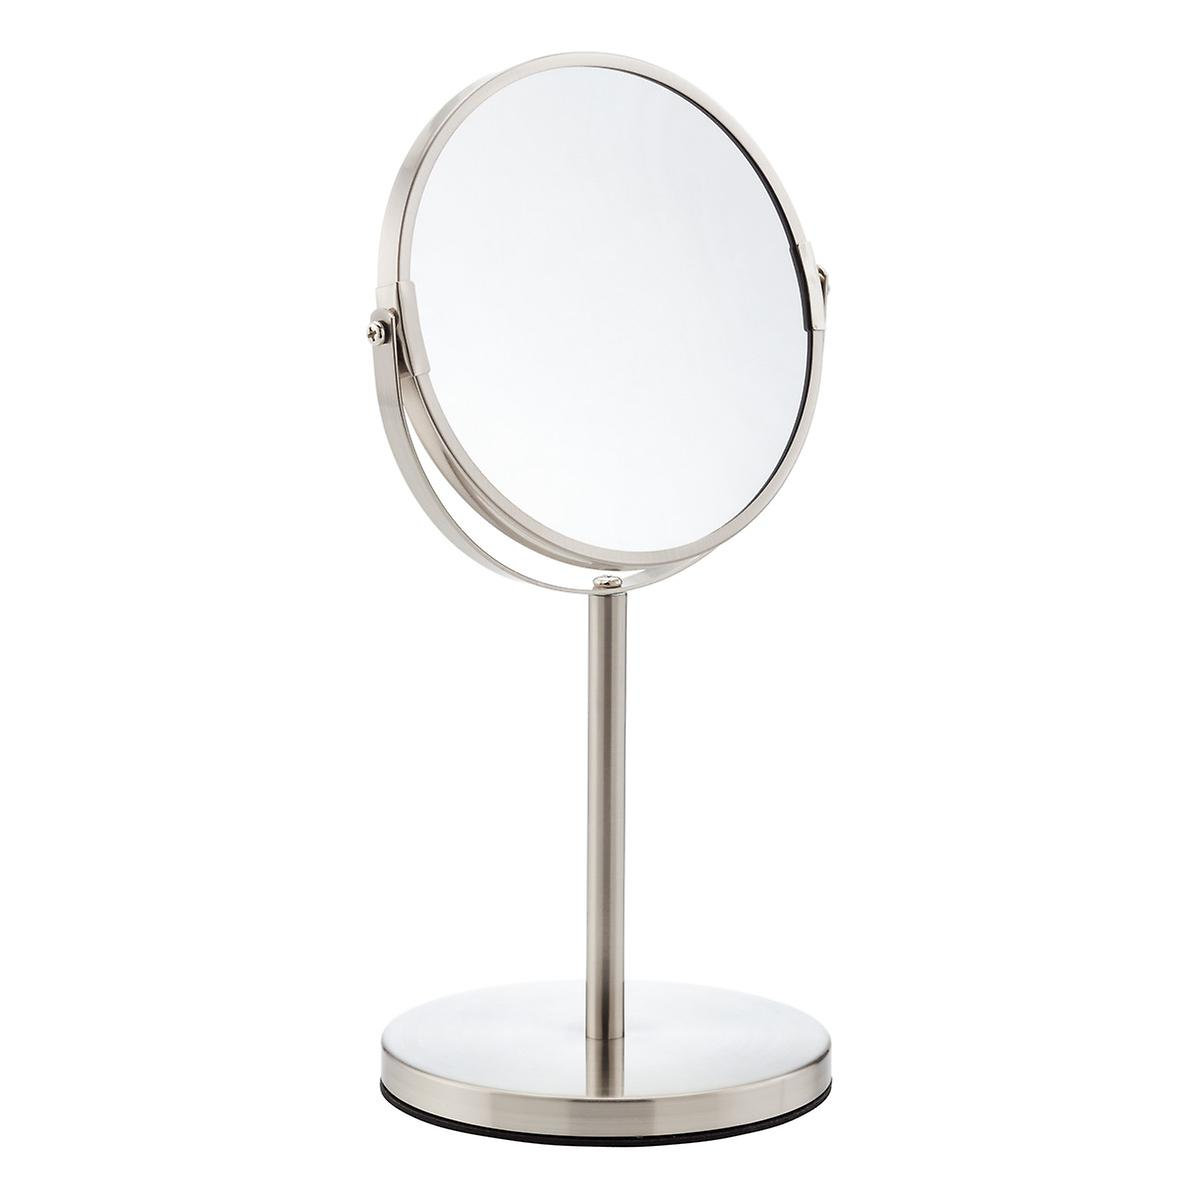 1X/5X Swivel Mirror